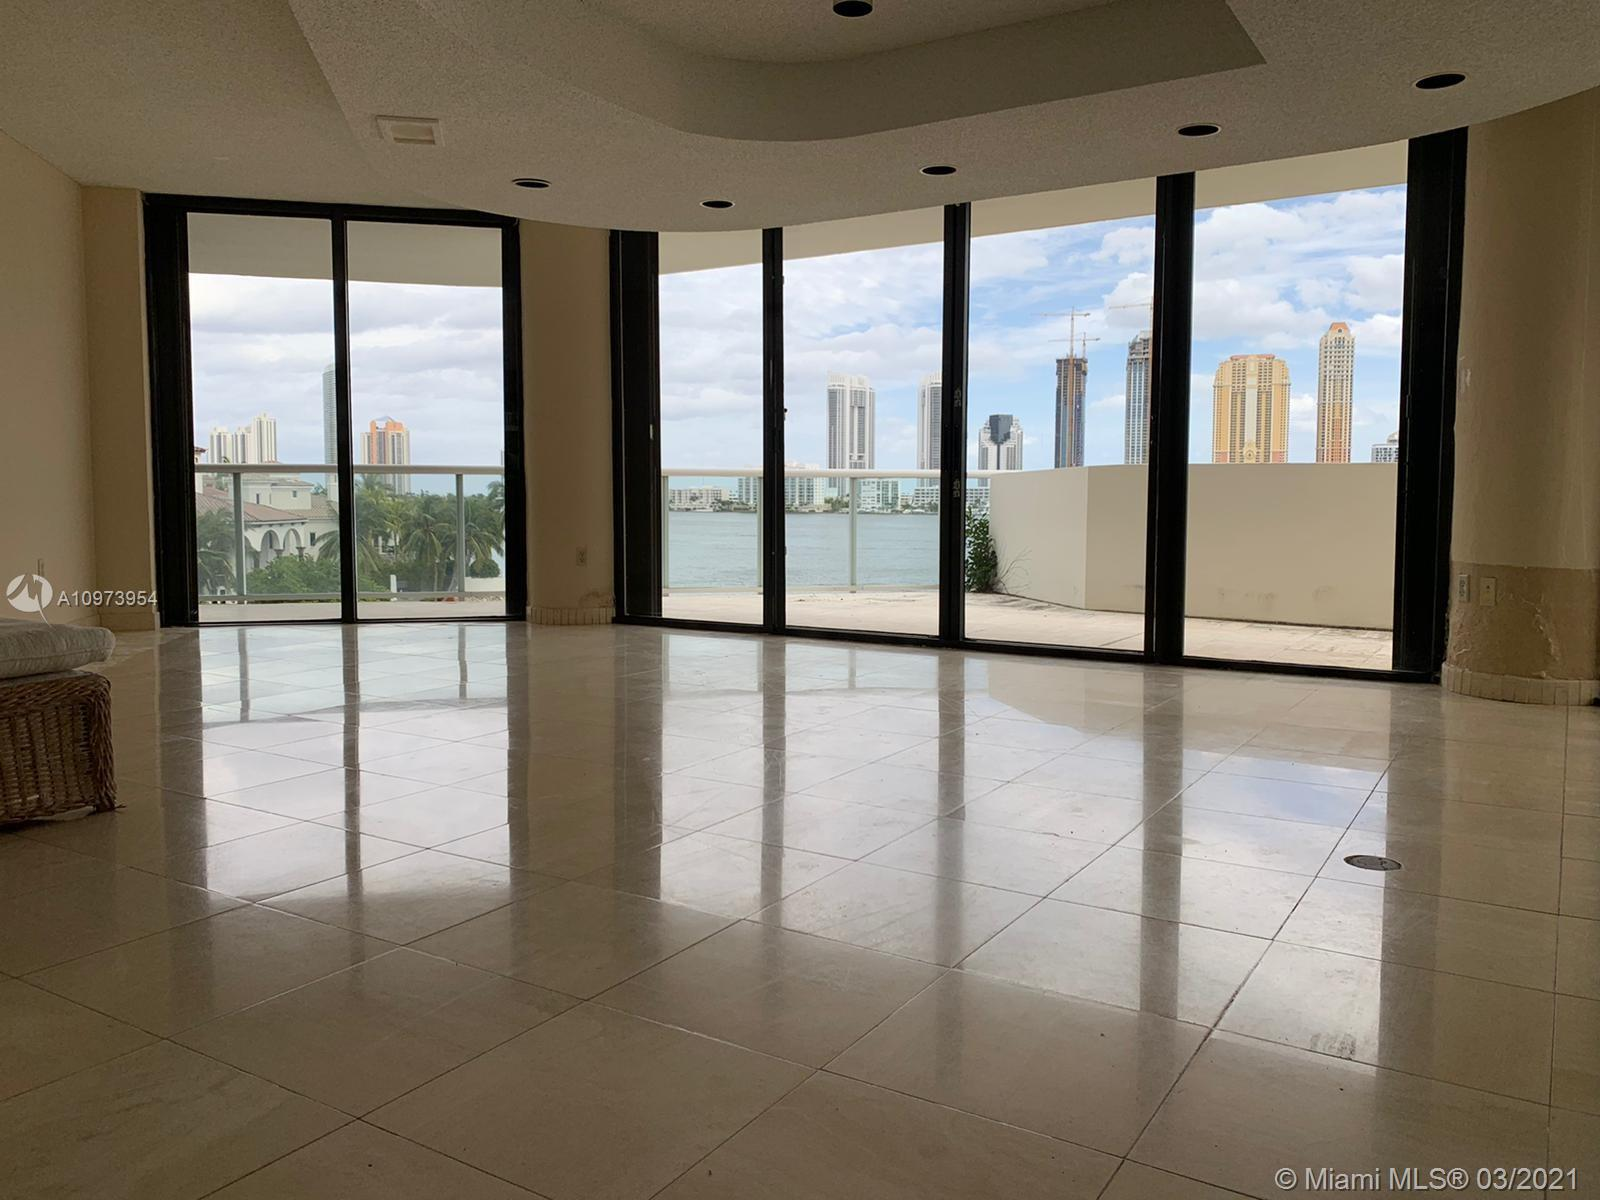 4000 Williams Island #L-7 - 4000 Island Blvd #L-7, Aventura, FL 33160